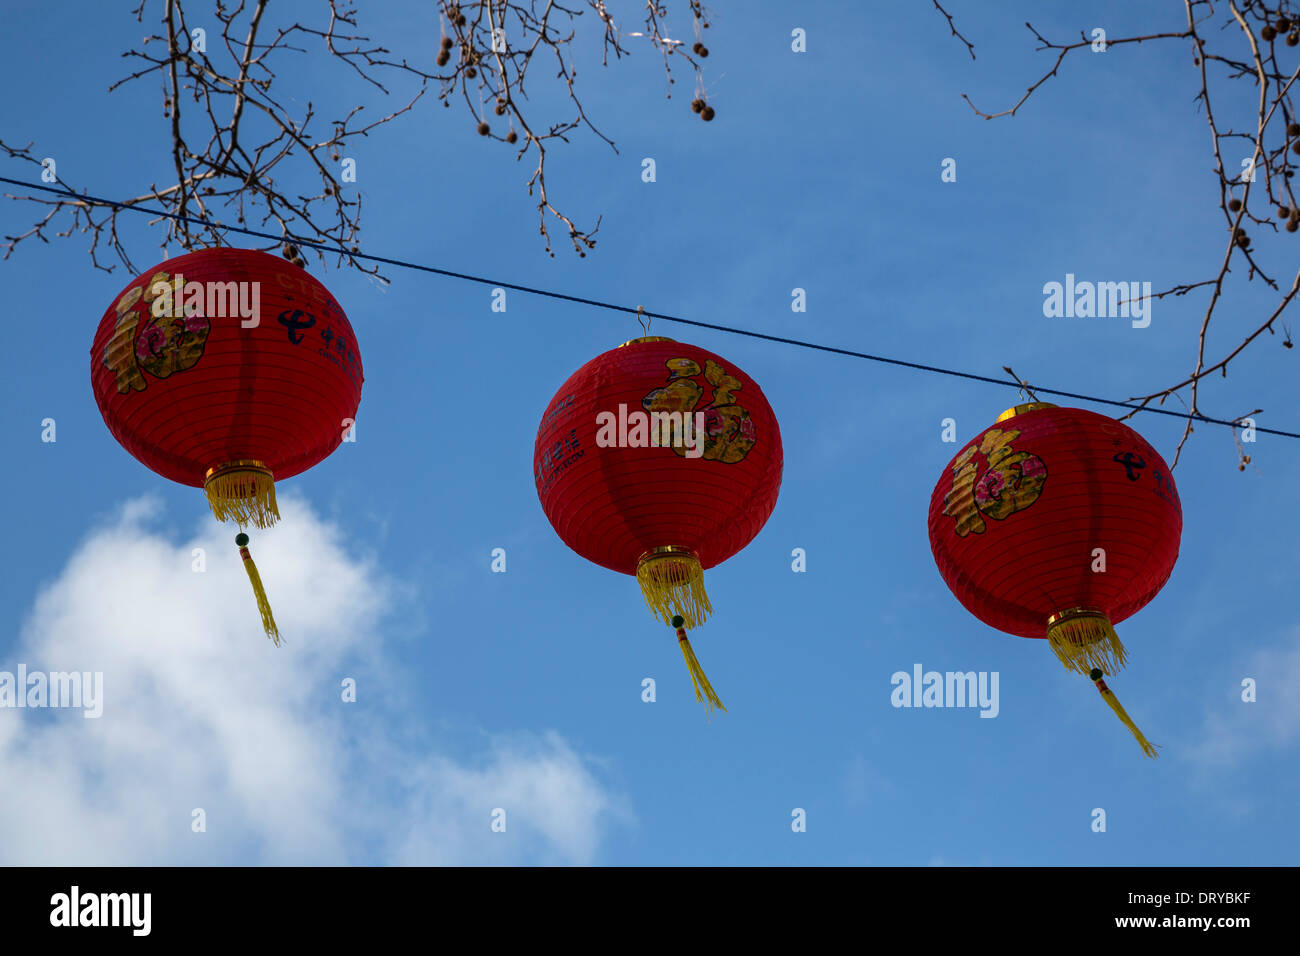 Three red Chinese lanterns against a vivid blue sky Celebrating Chinese New Year. - Stock Image